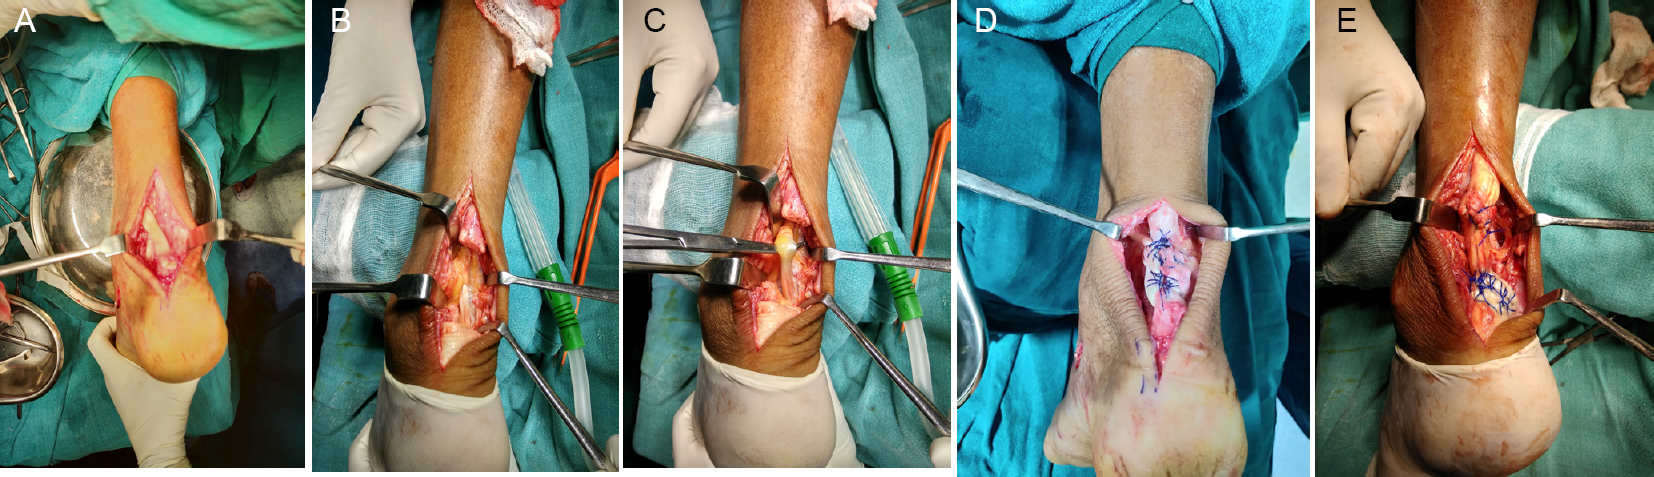 Figure 2: Intraoperative photos.